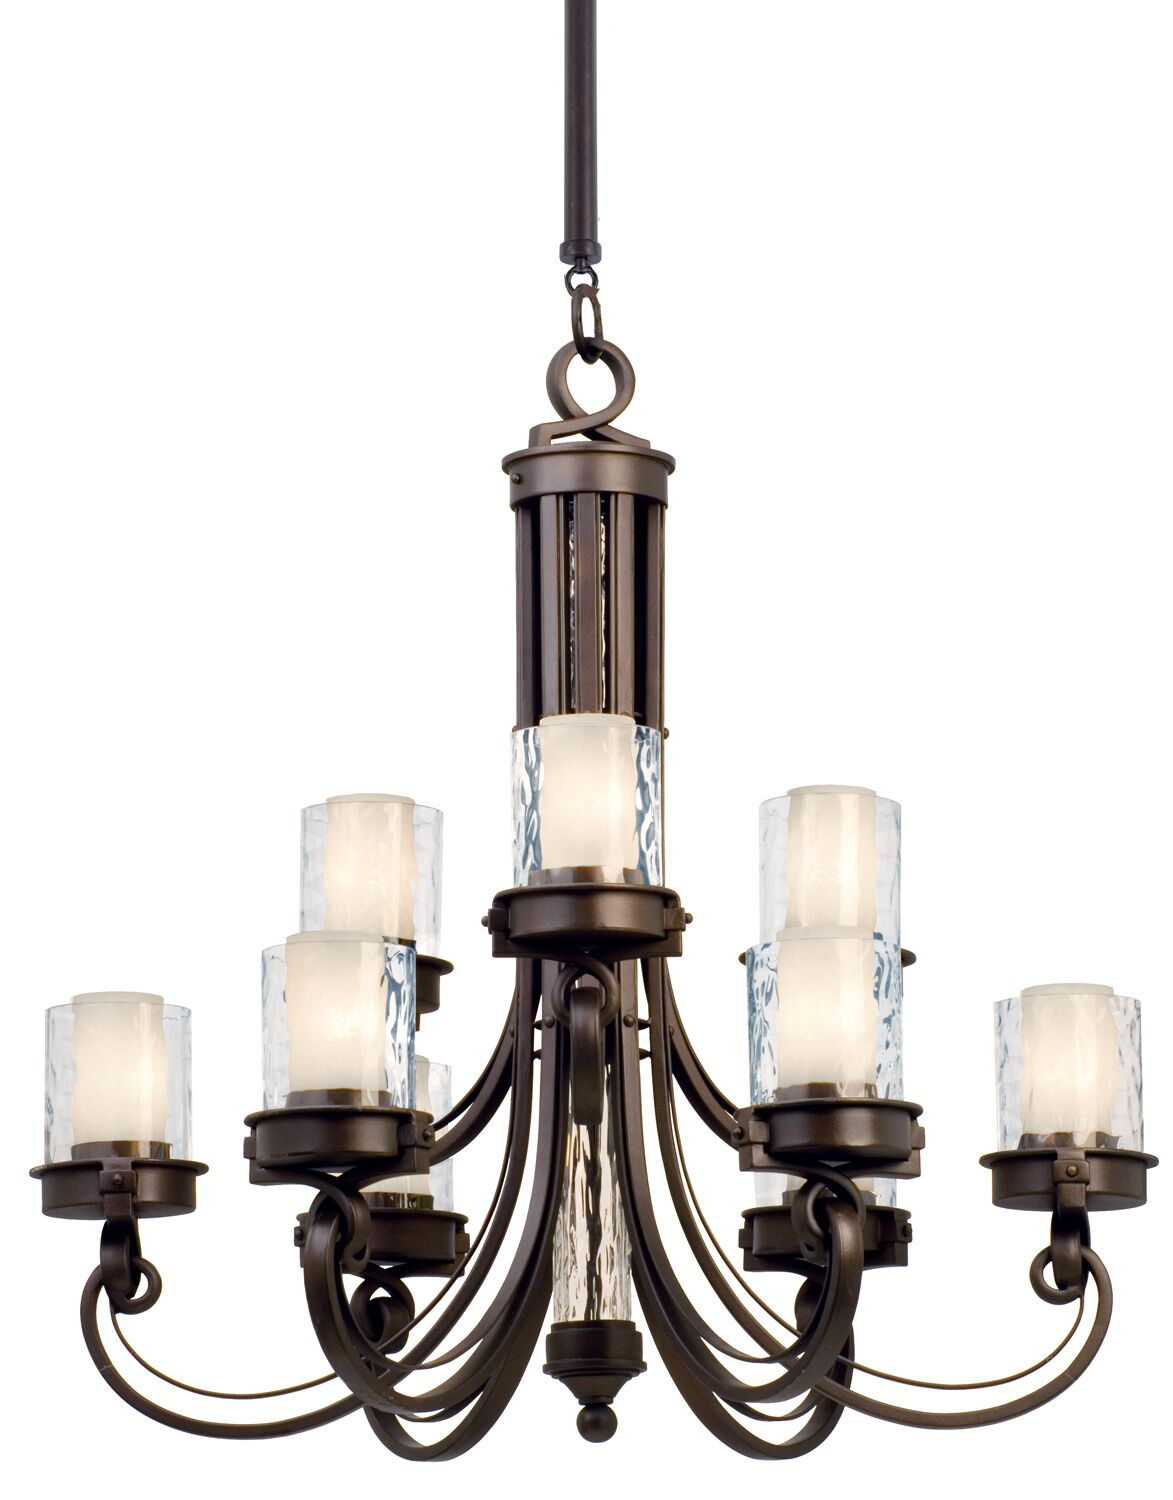 Newport 9-Light Shaded Chandelier Finish: Satin Bronze, Shade: Tea-stained glass